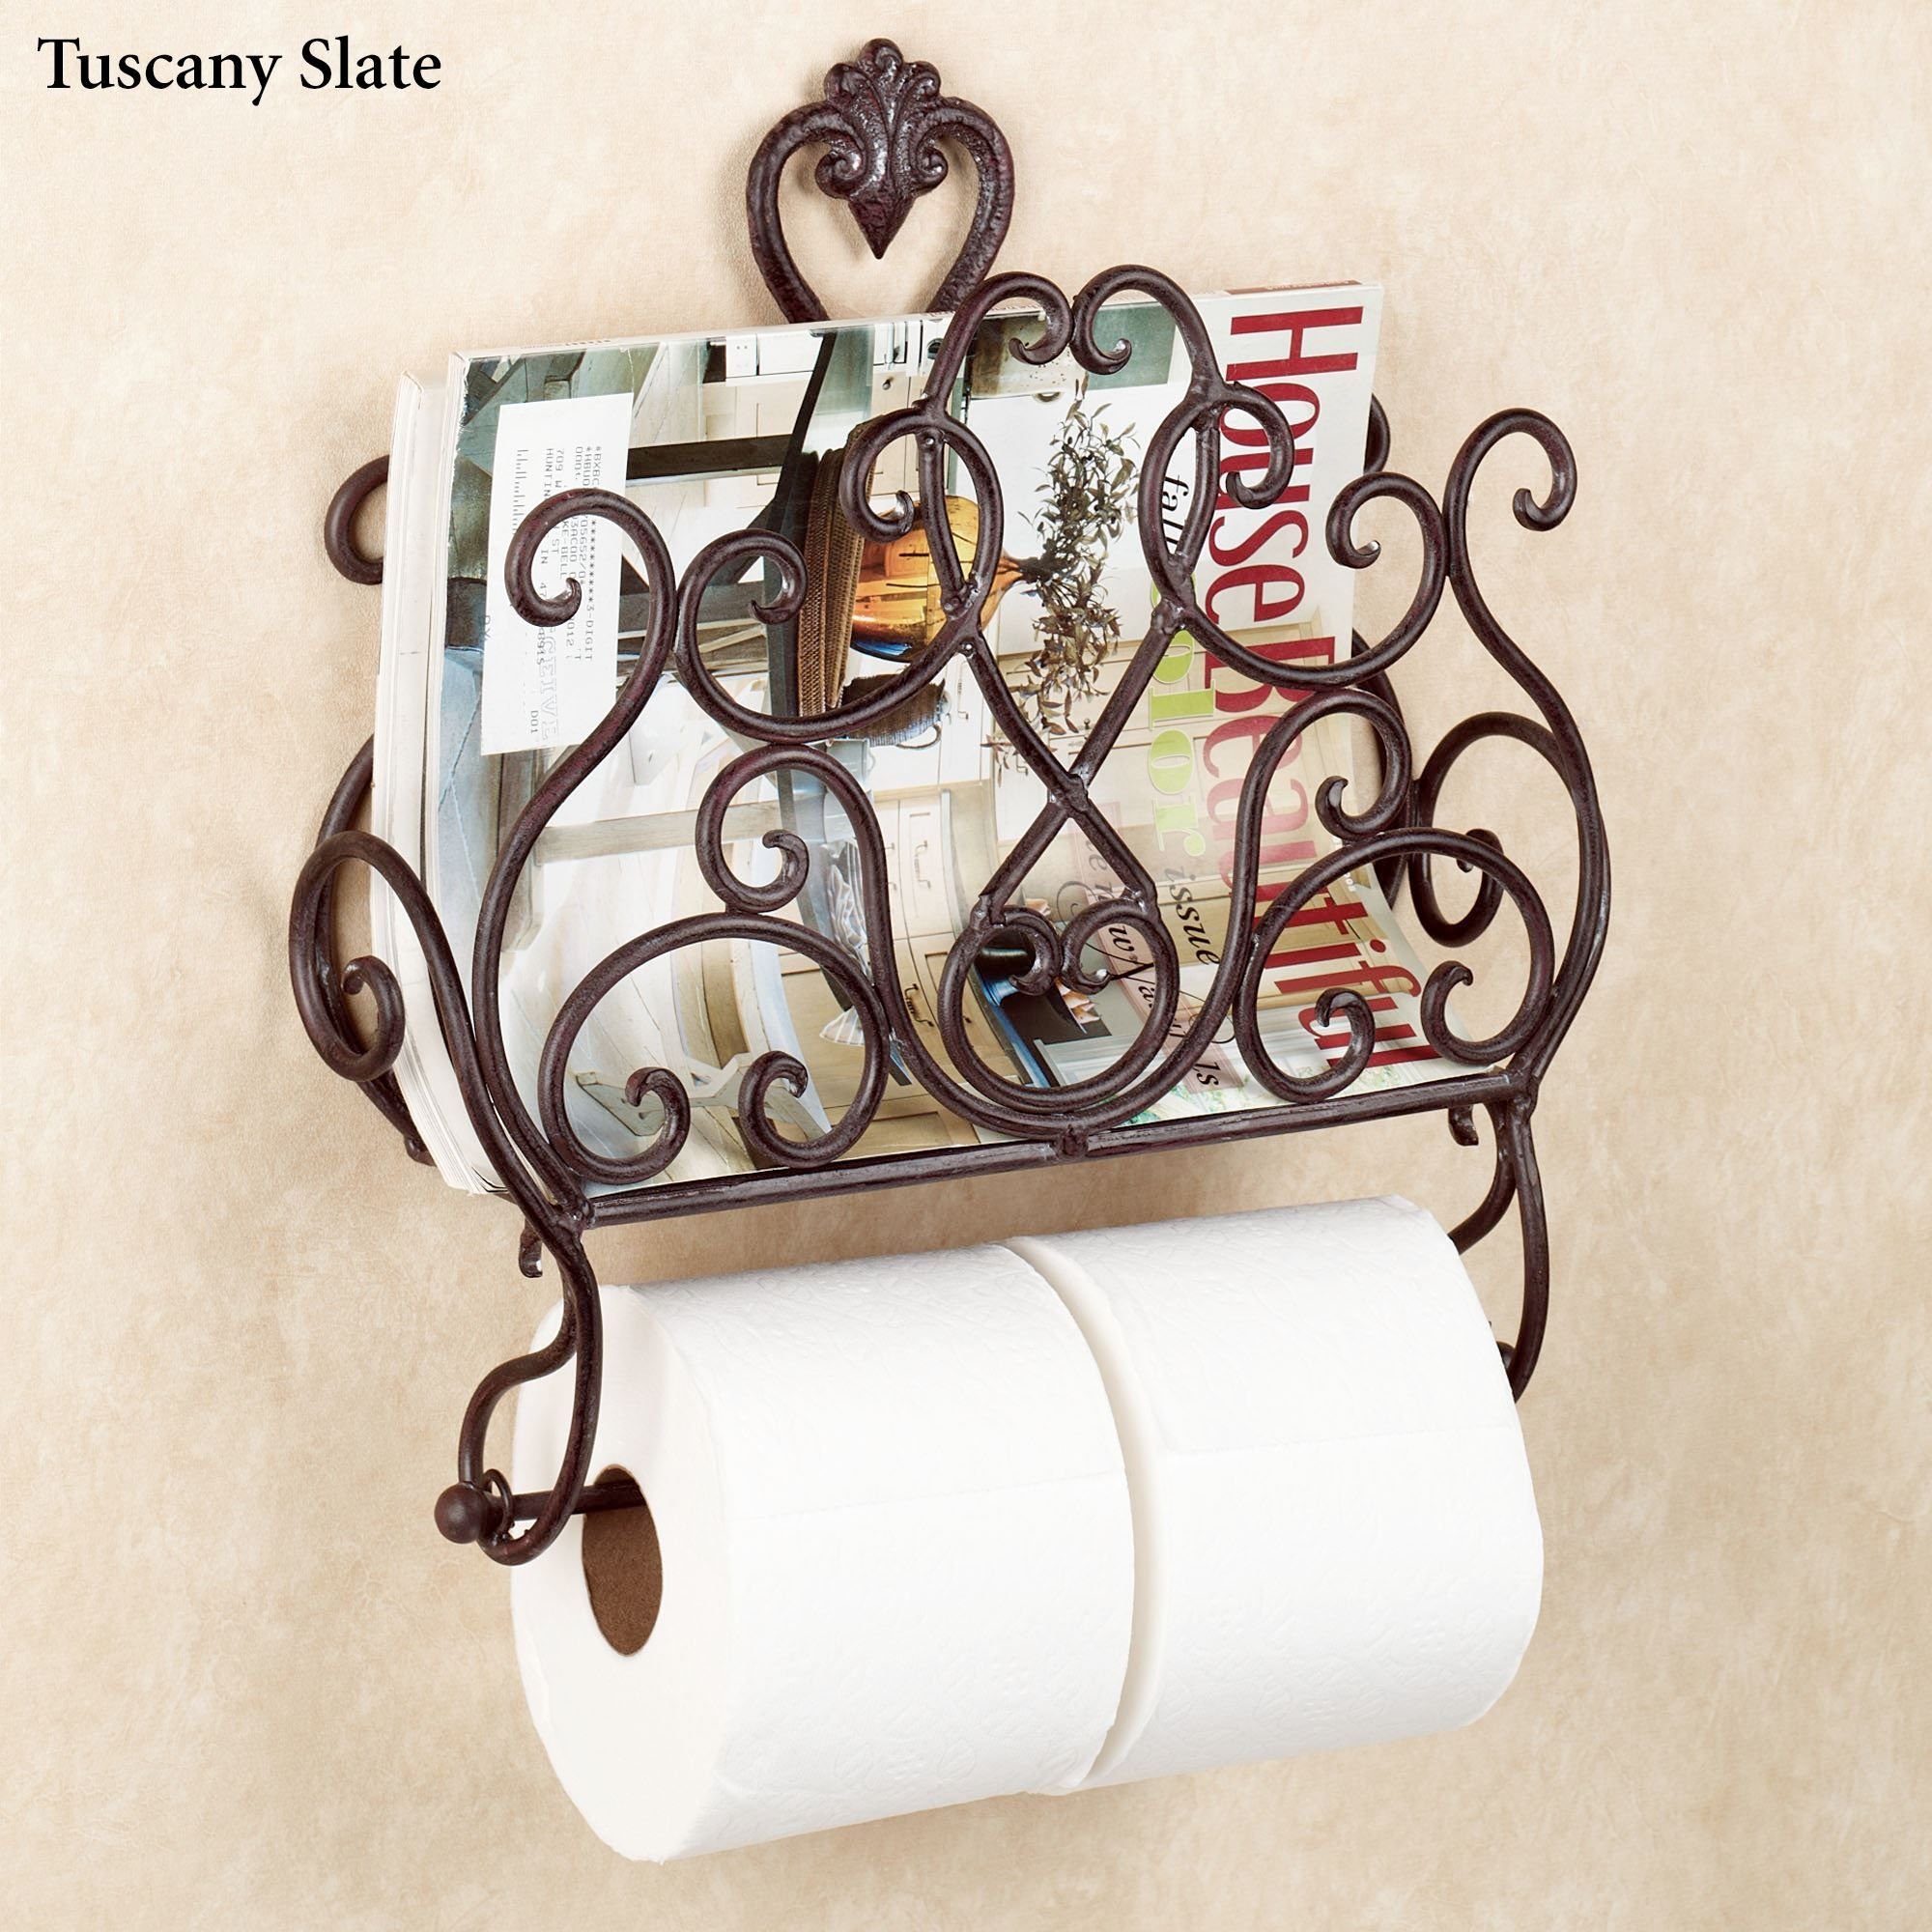 Aldabella Wall Magazine Rack With Toilet Paper Holder Toilet Paper Holder Toilet Paper Toilet